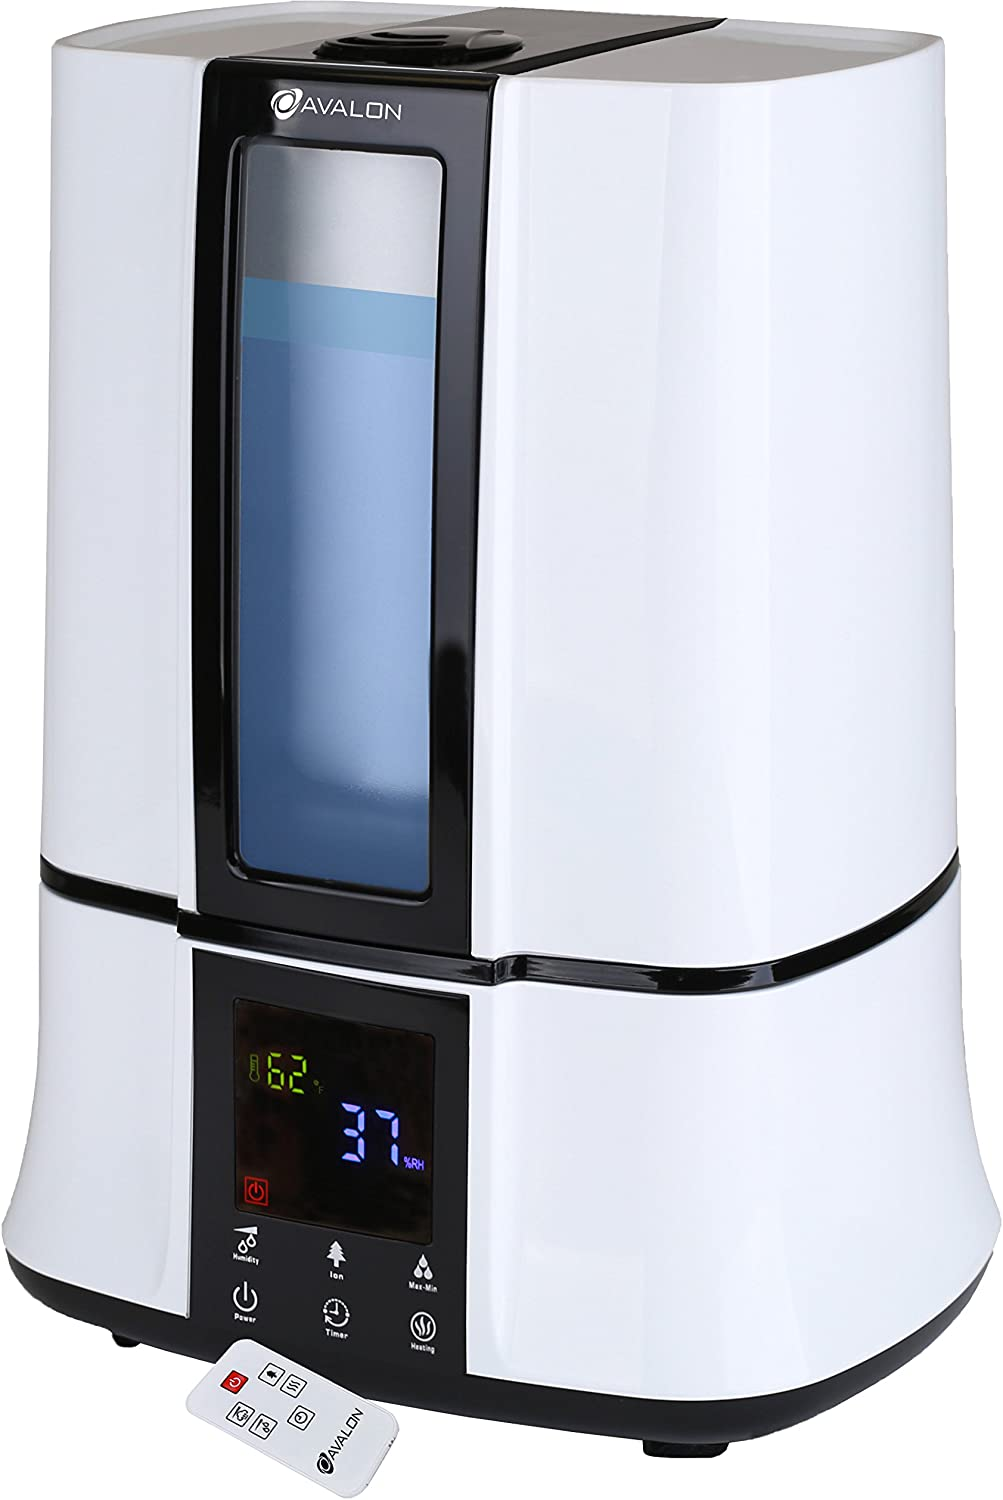 Avalon Warm/Cool Mist Humidifier, White